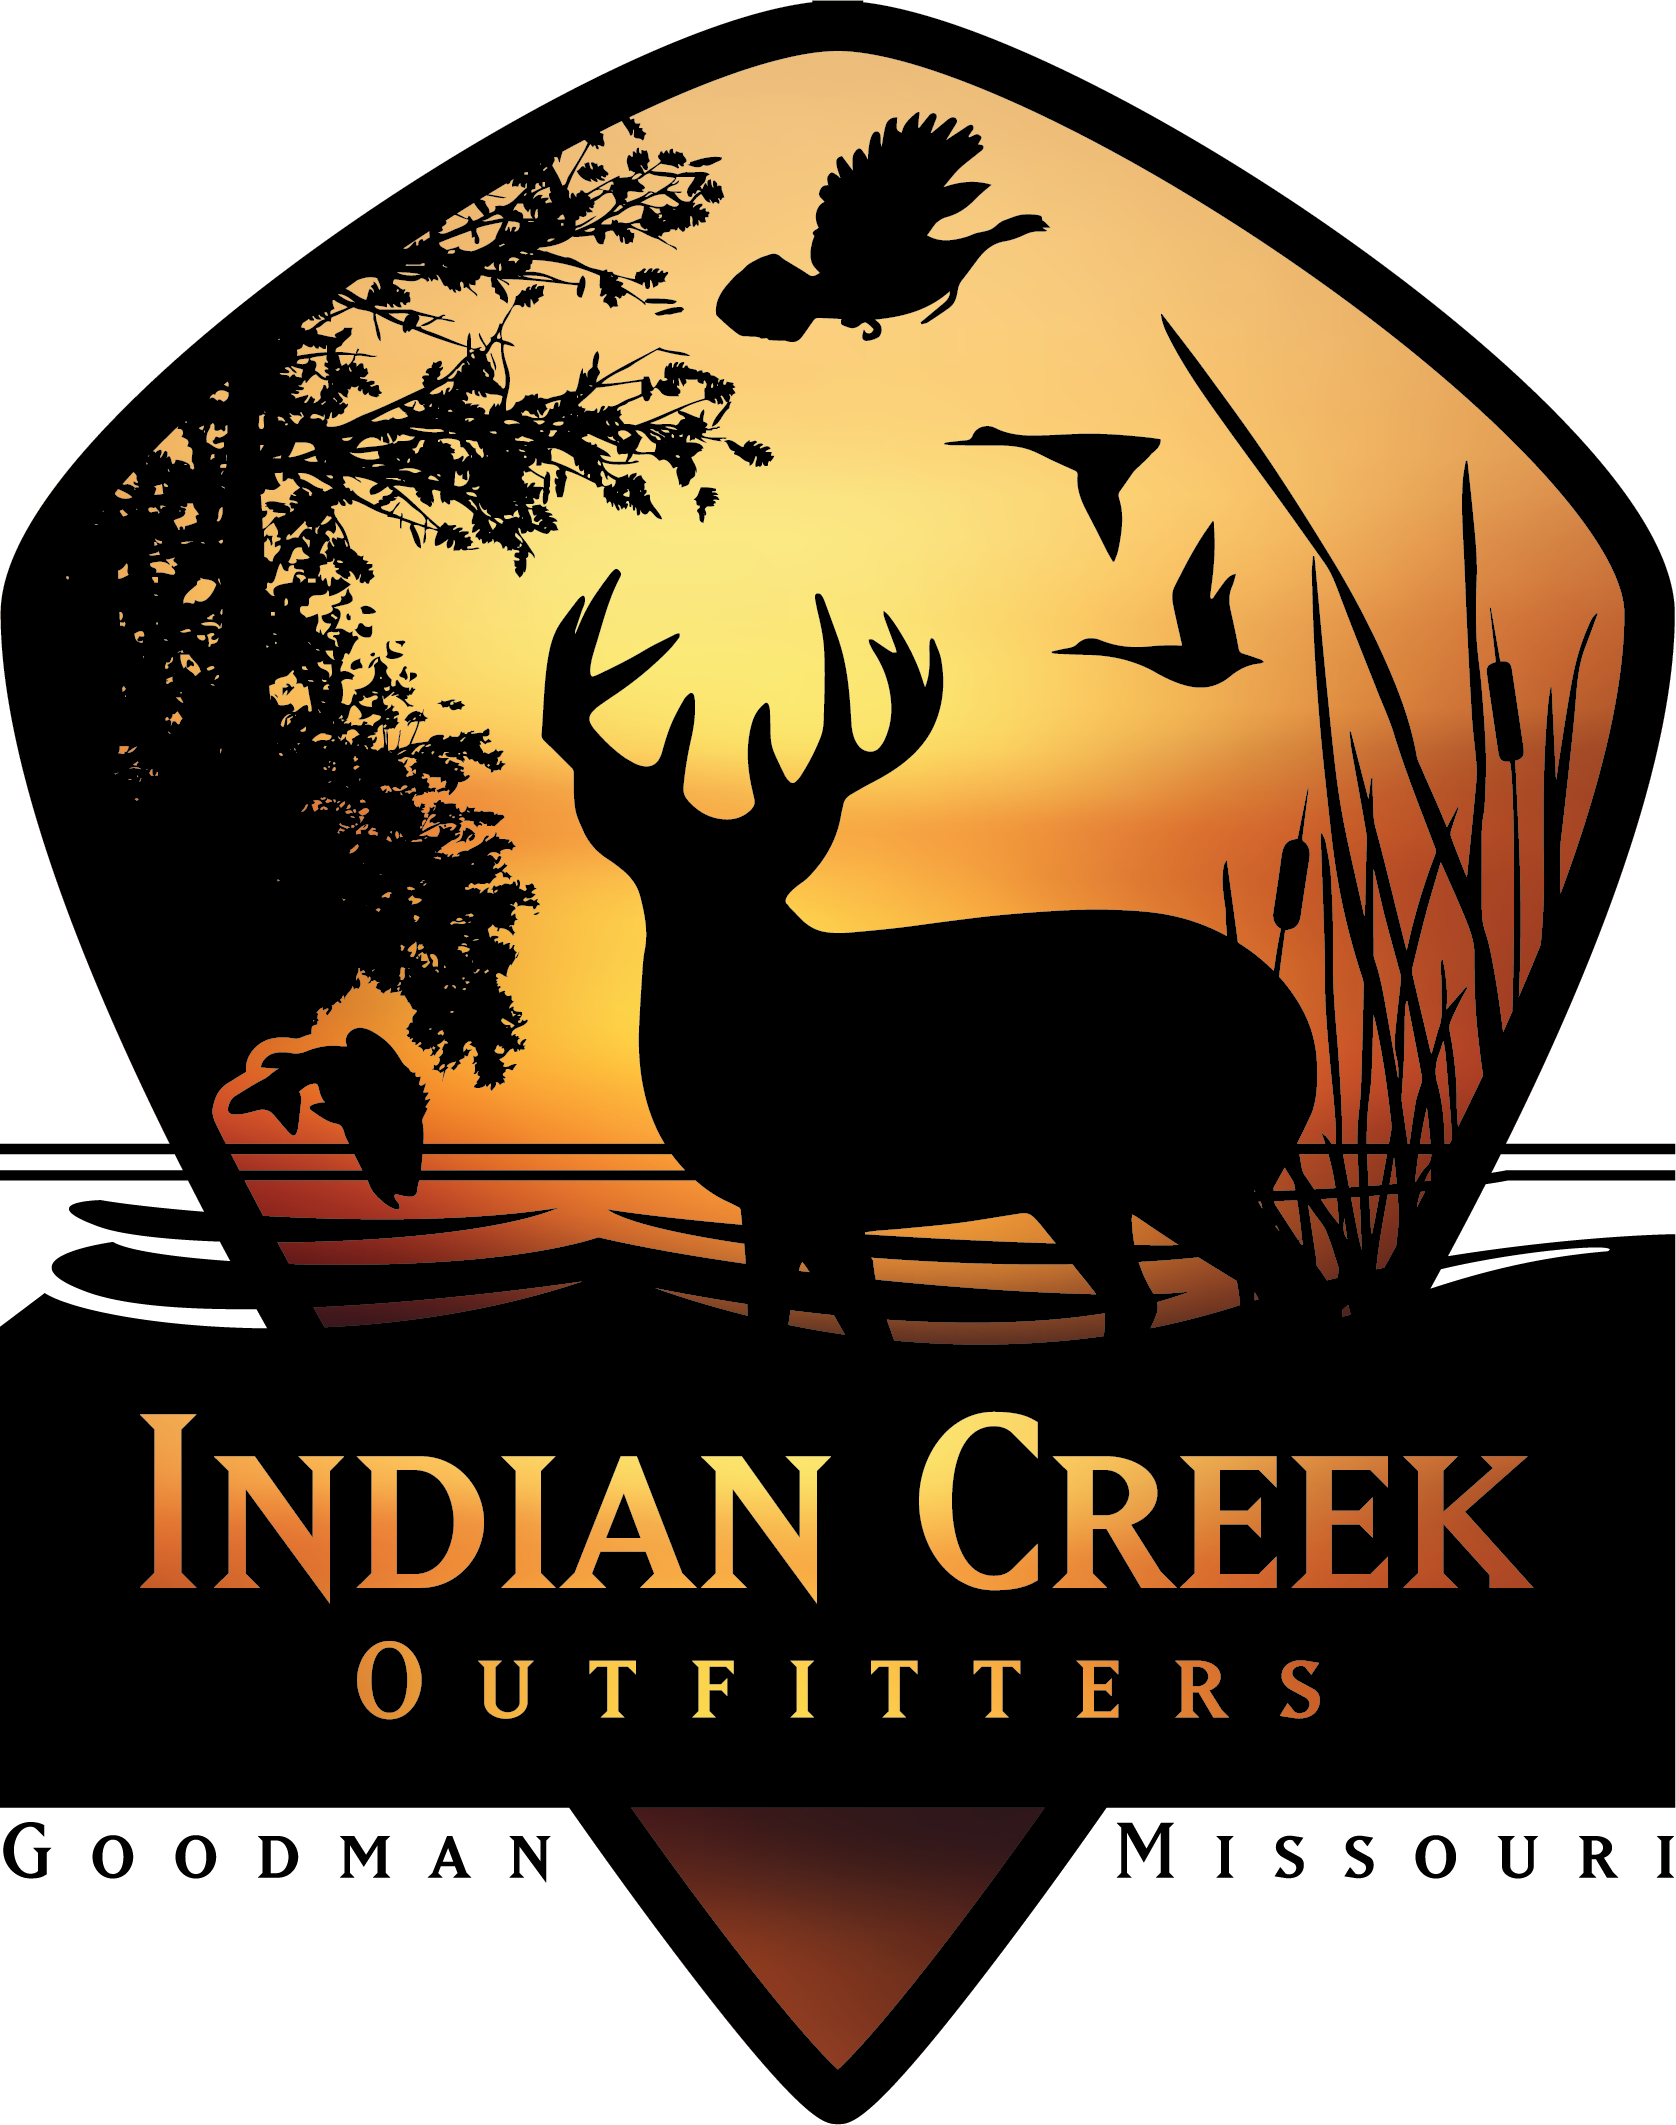 Indian Creek Outfitters Full Service Hunting And Fishing Outfitter